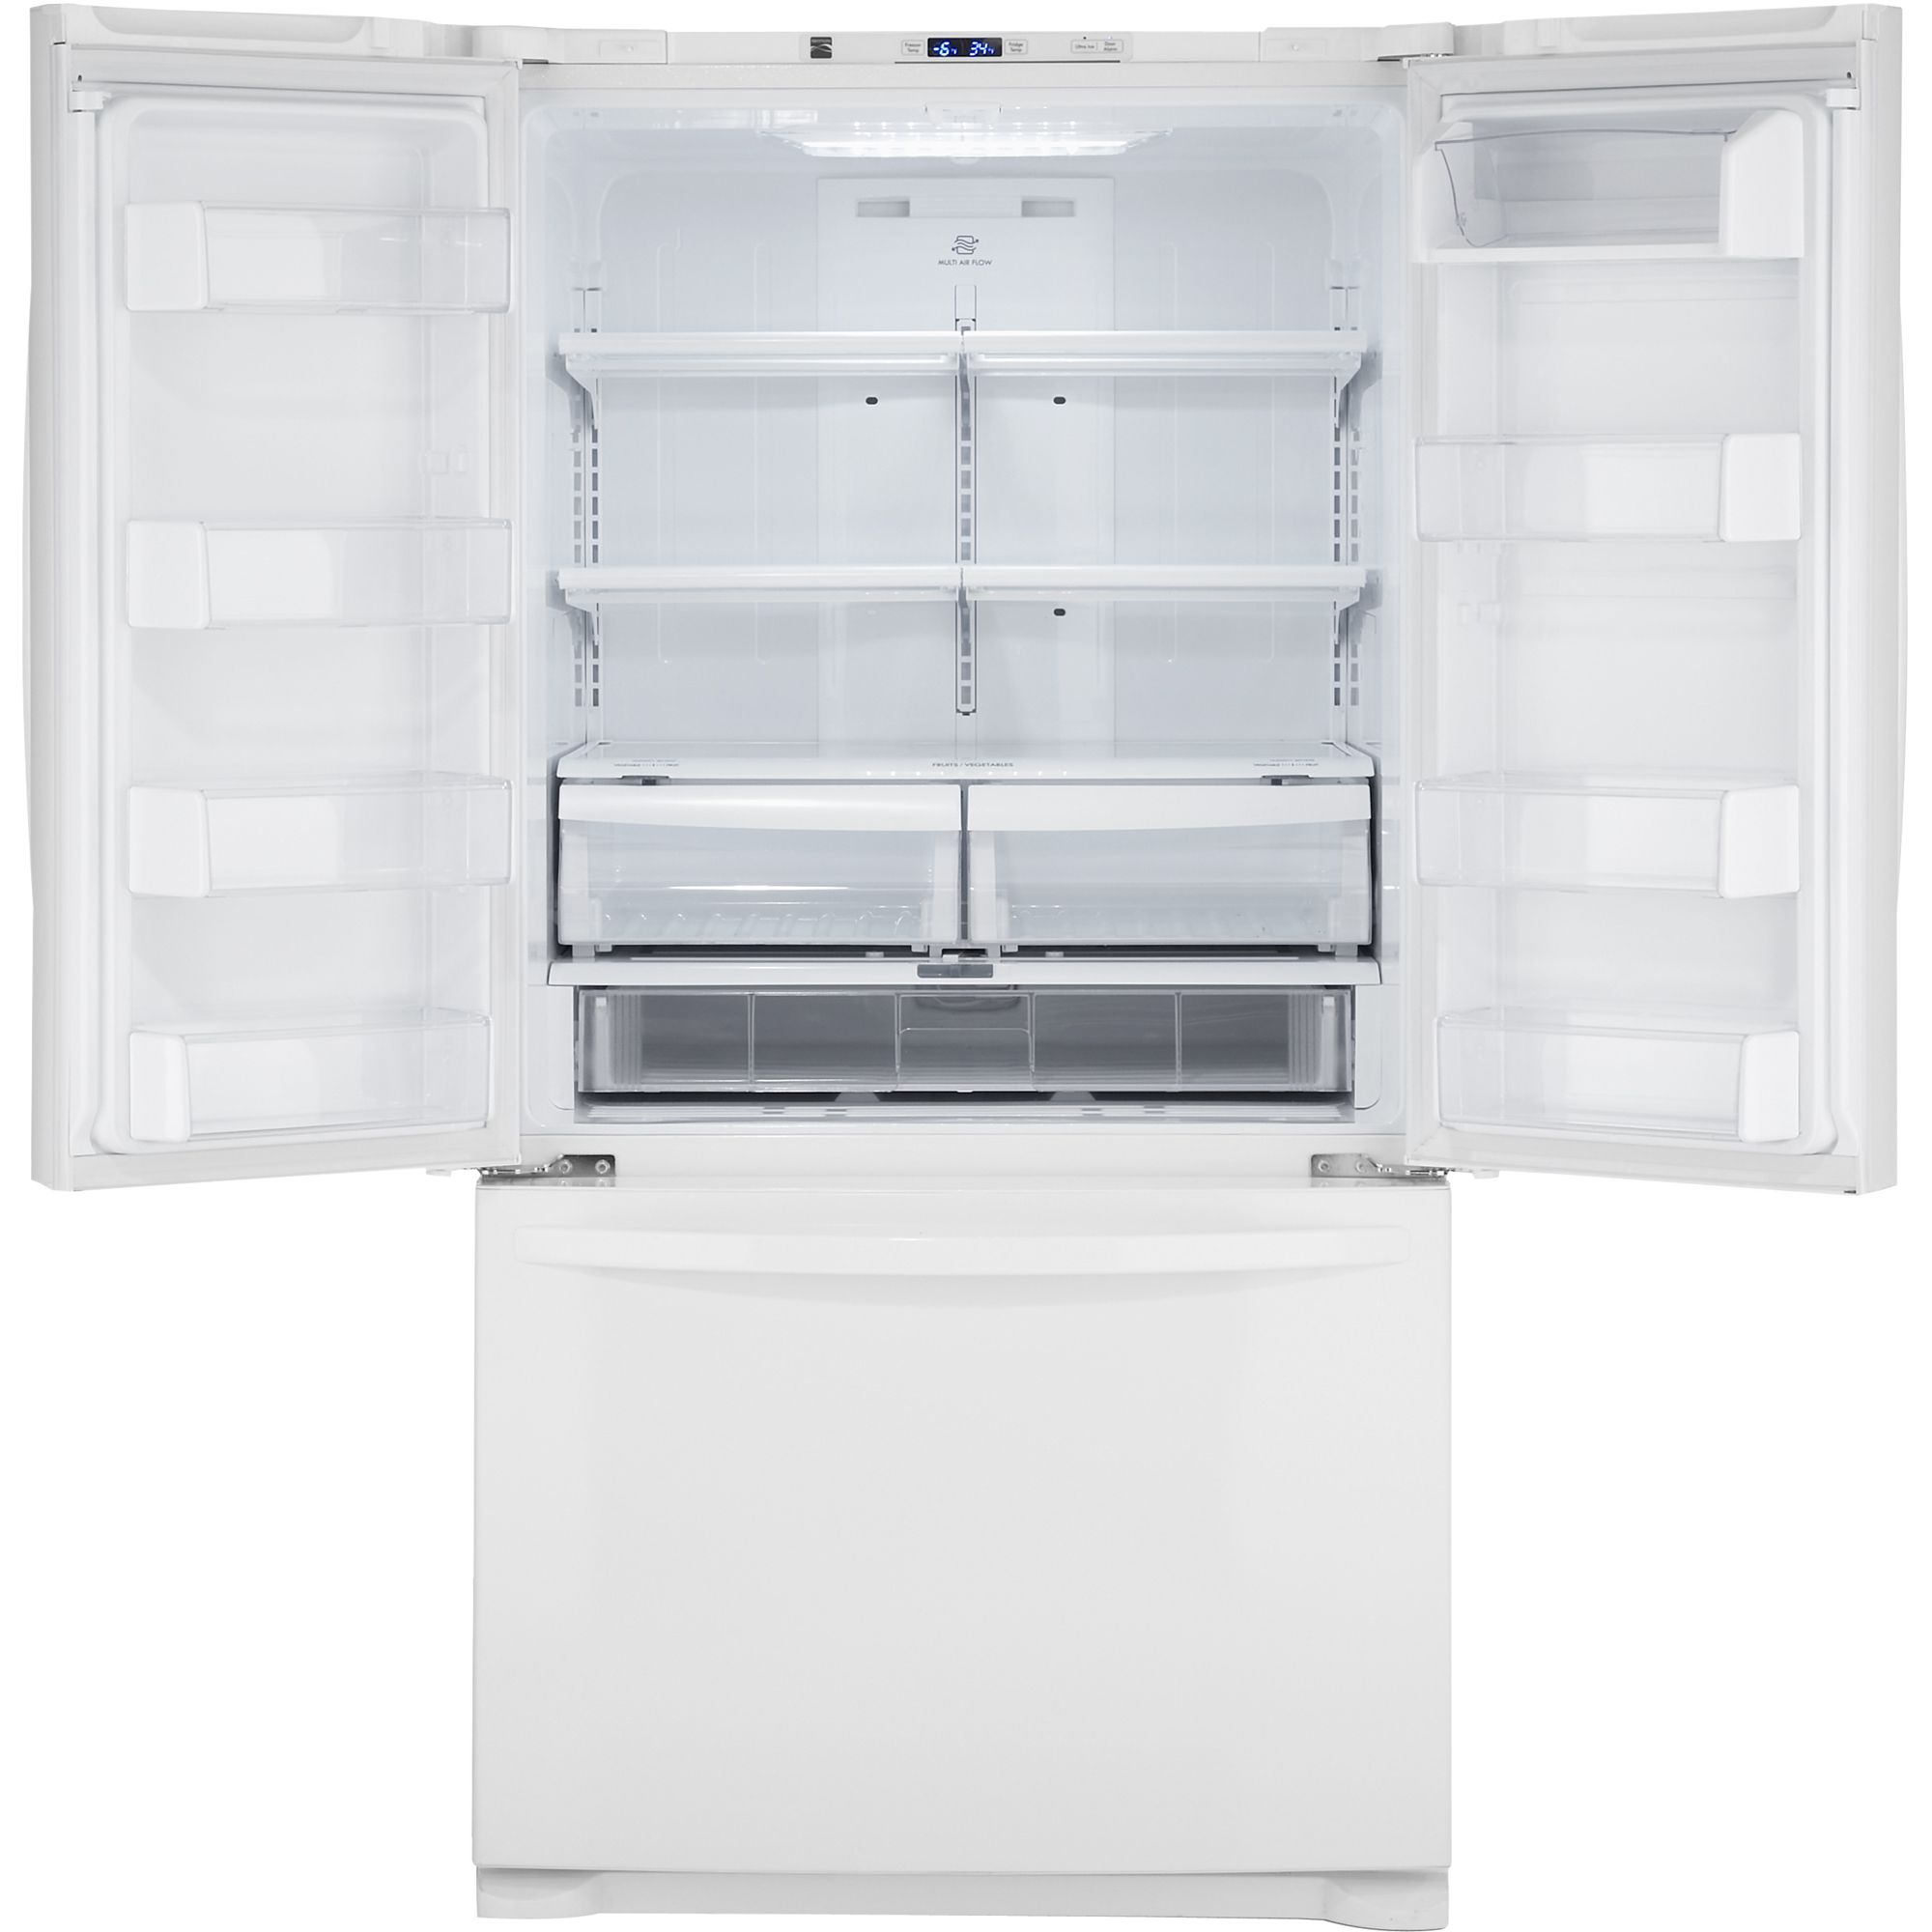 Kenmore 25.0 cu. ft. French Door Bottom-Freezer Refrigerator - White